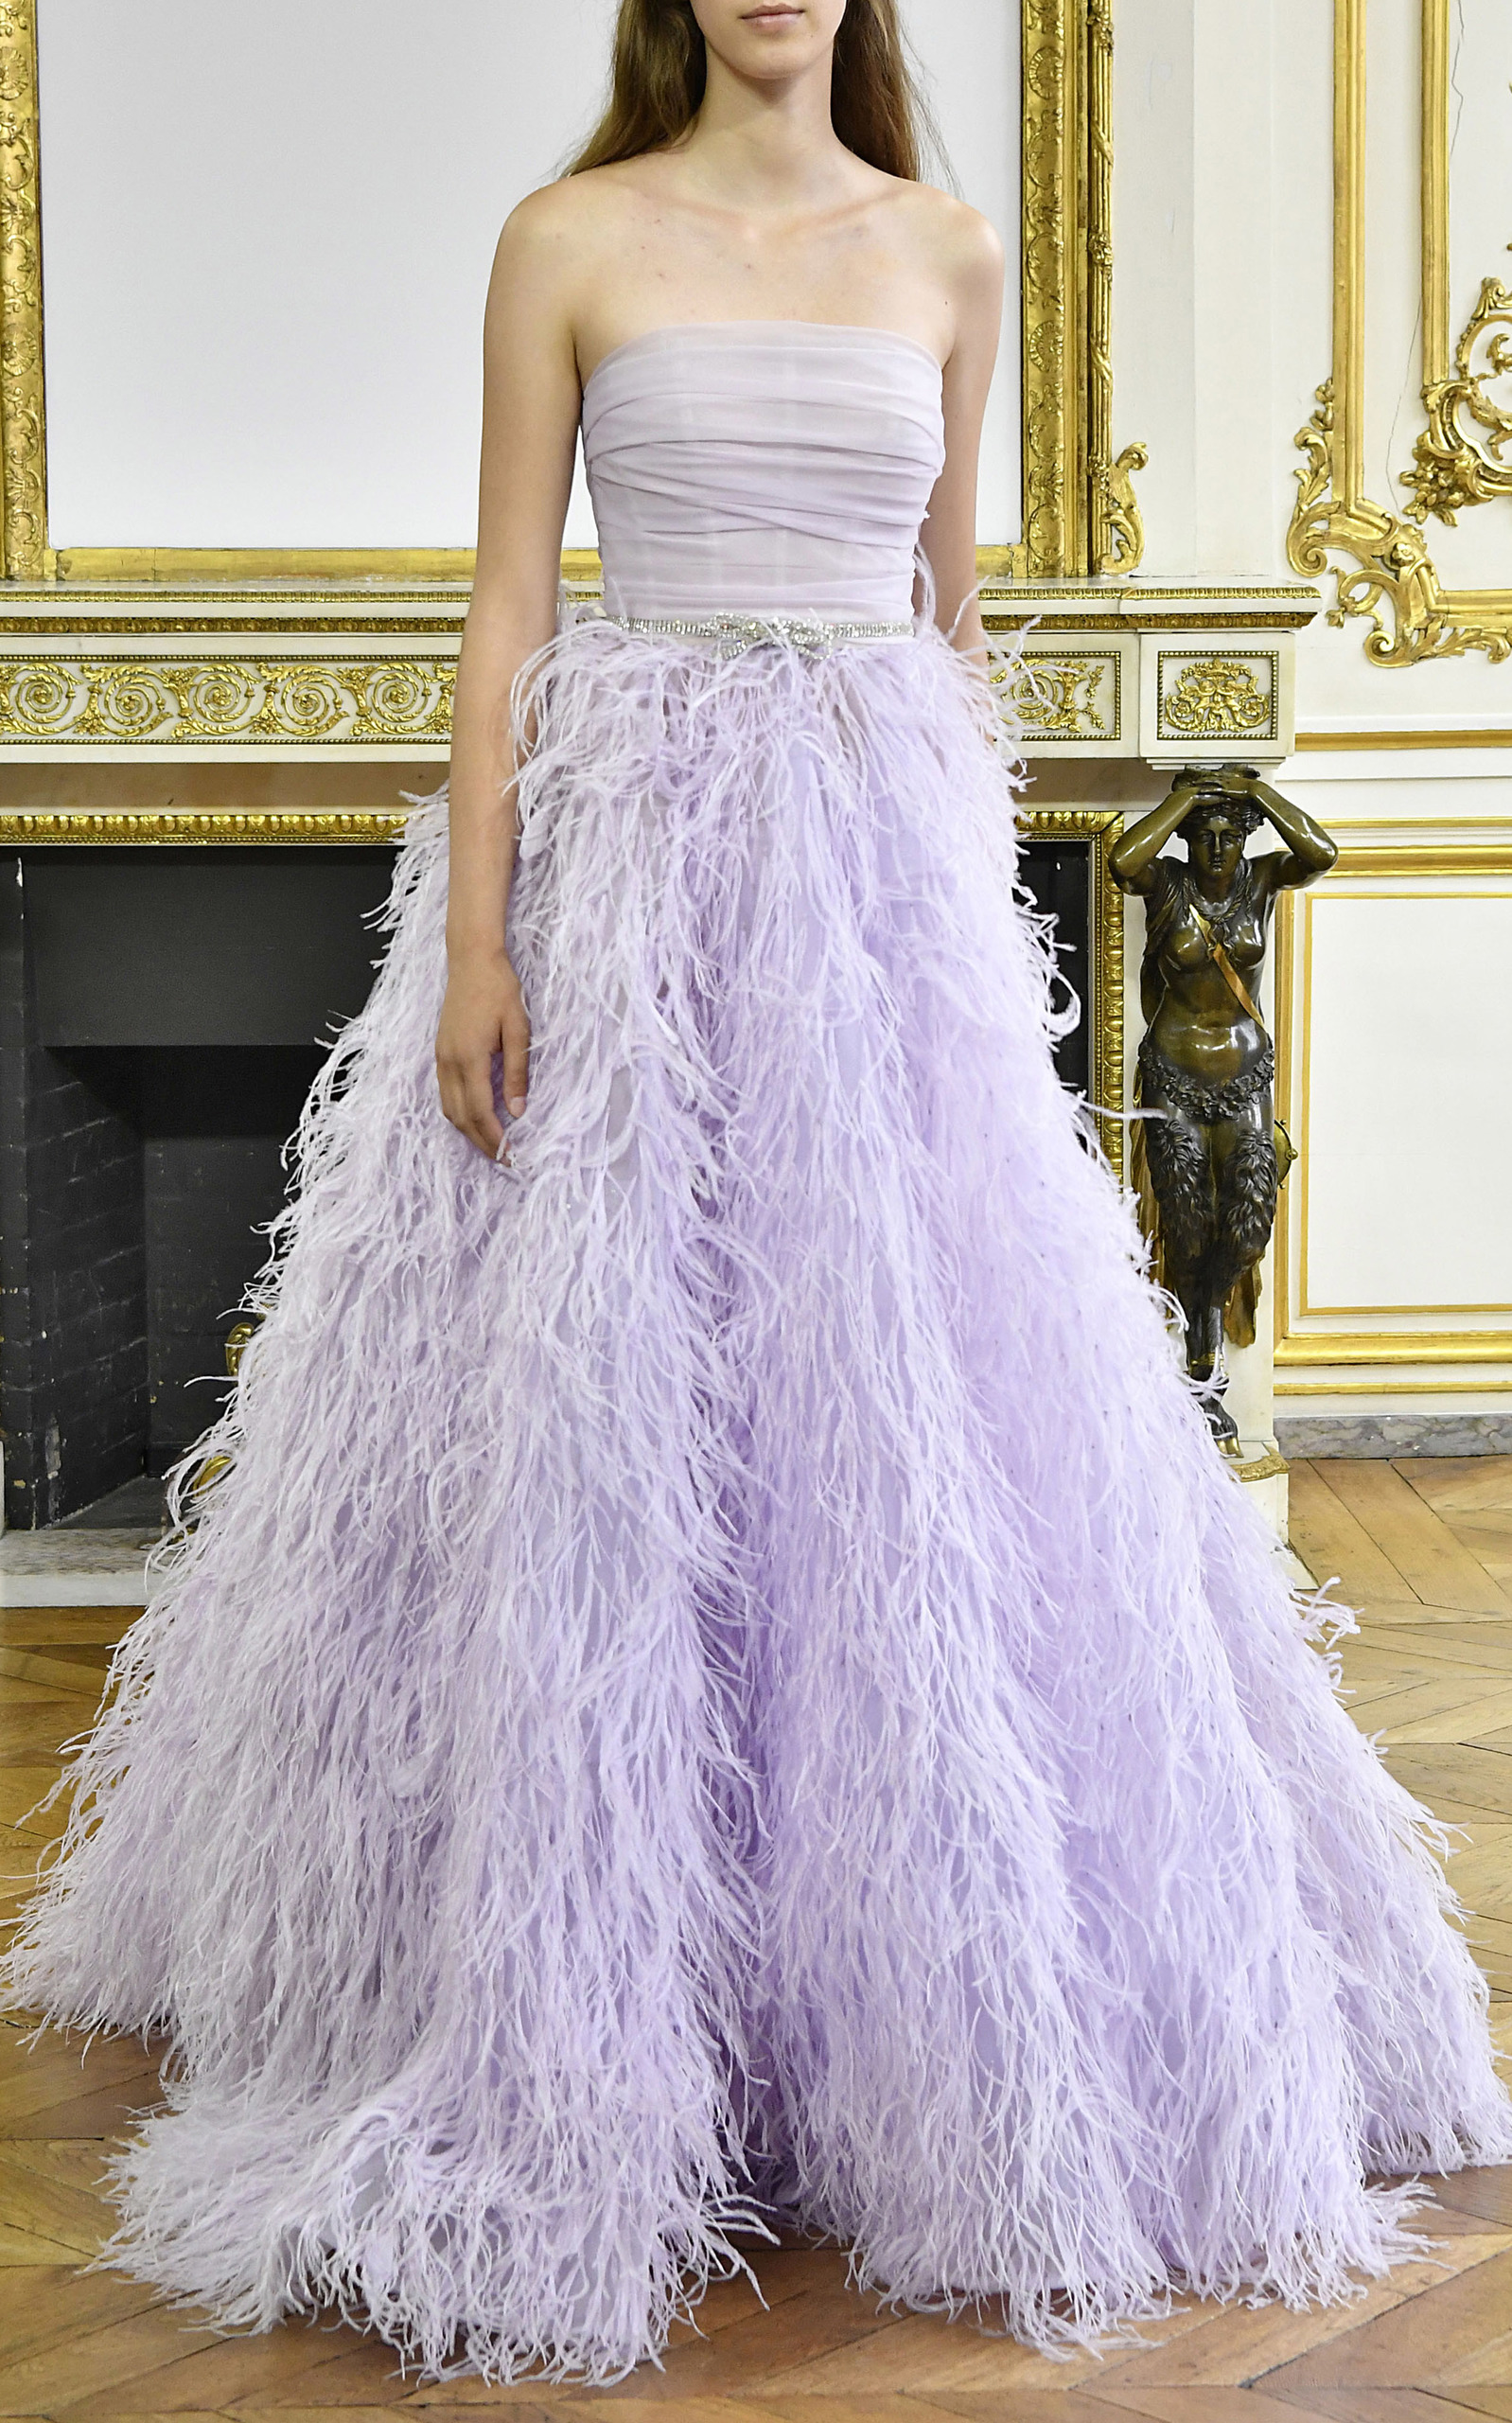 Feather Strapless Ball Gown by Monique Lhuillier | Moda Operandi